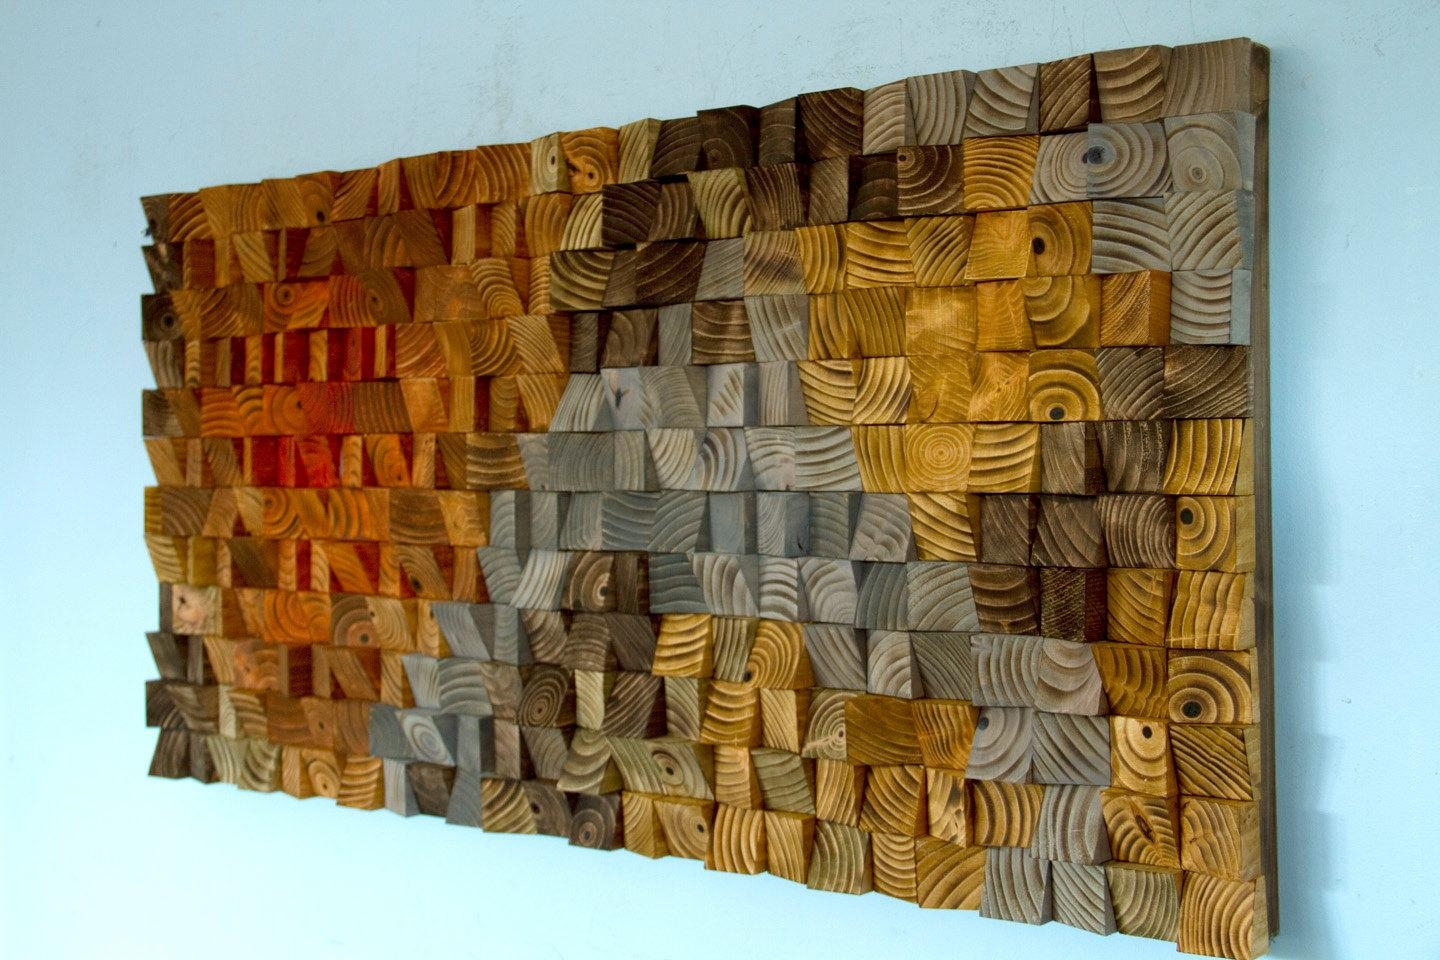 Rustic Wood Wall Art Wood Wall Sculpture Abstract Wood Art With Wood Wall Art (Image 12 of 20)